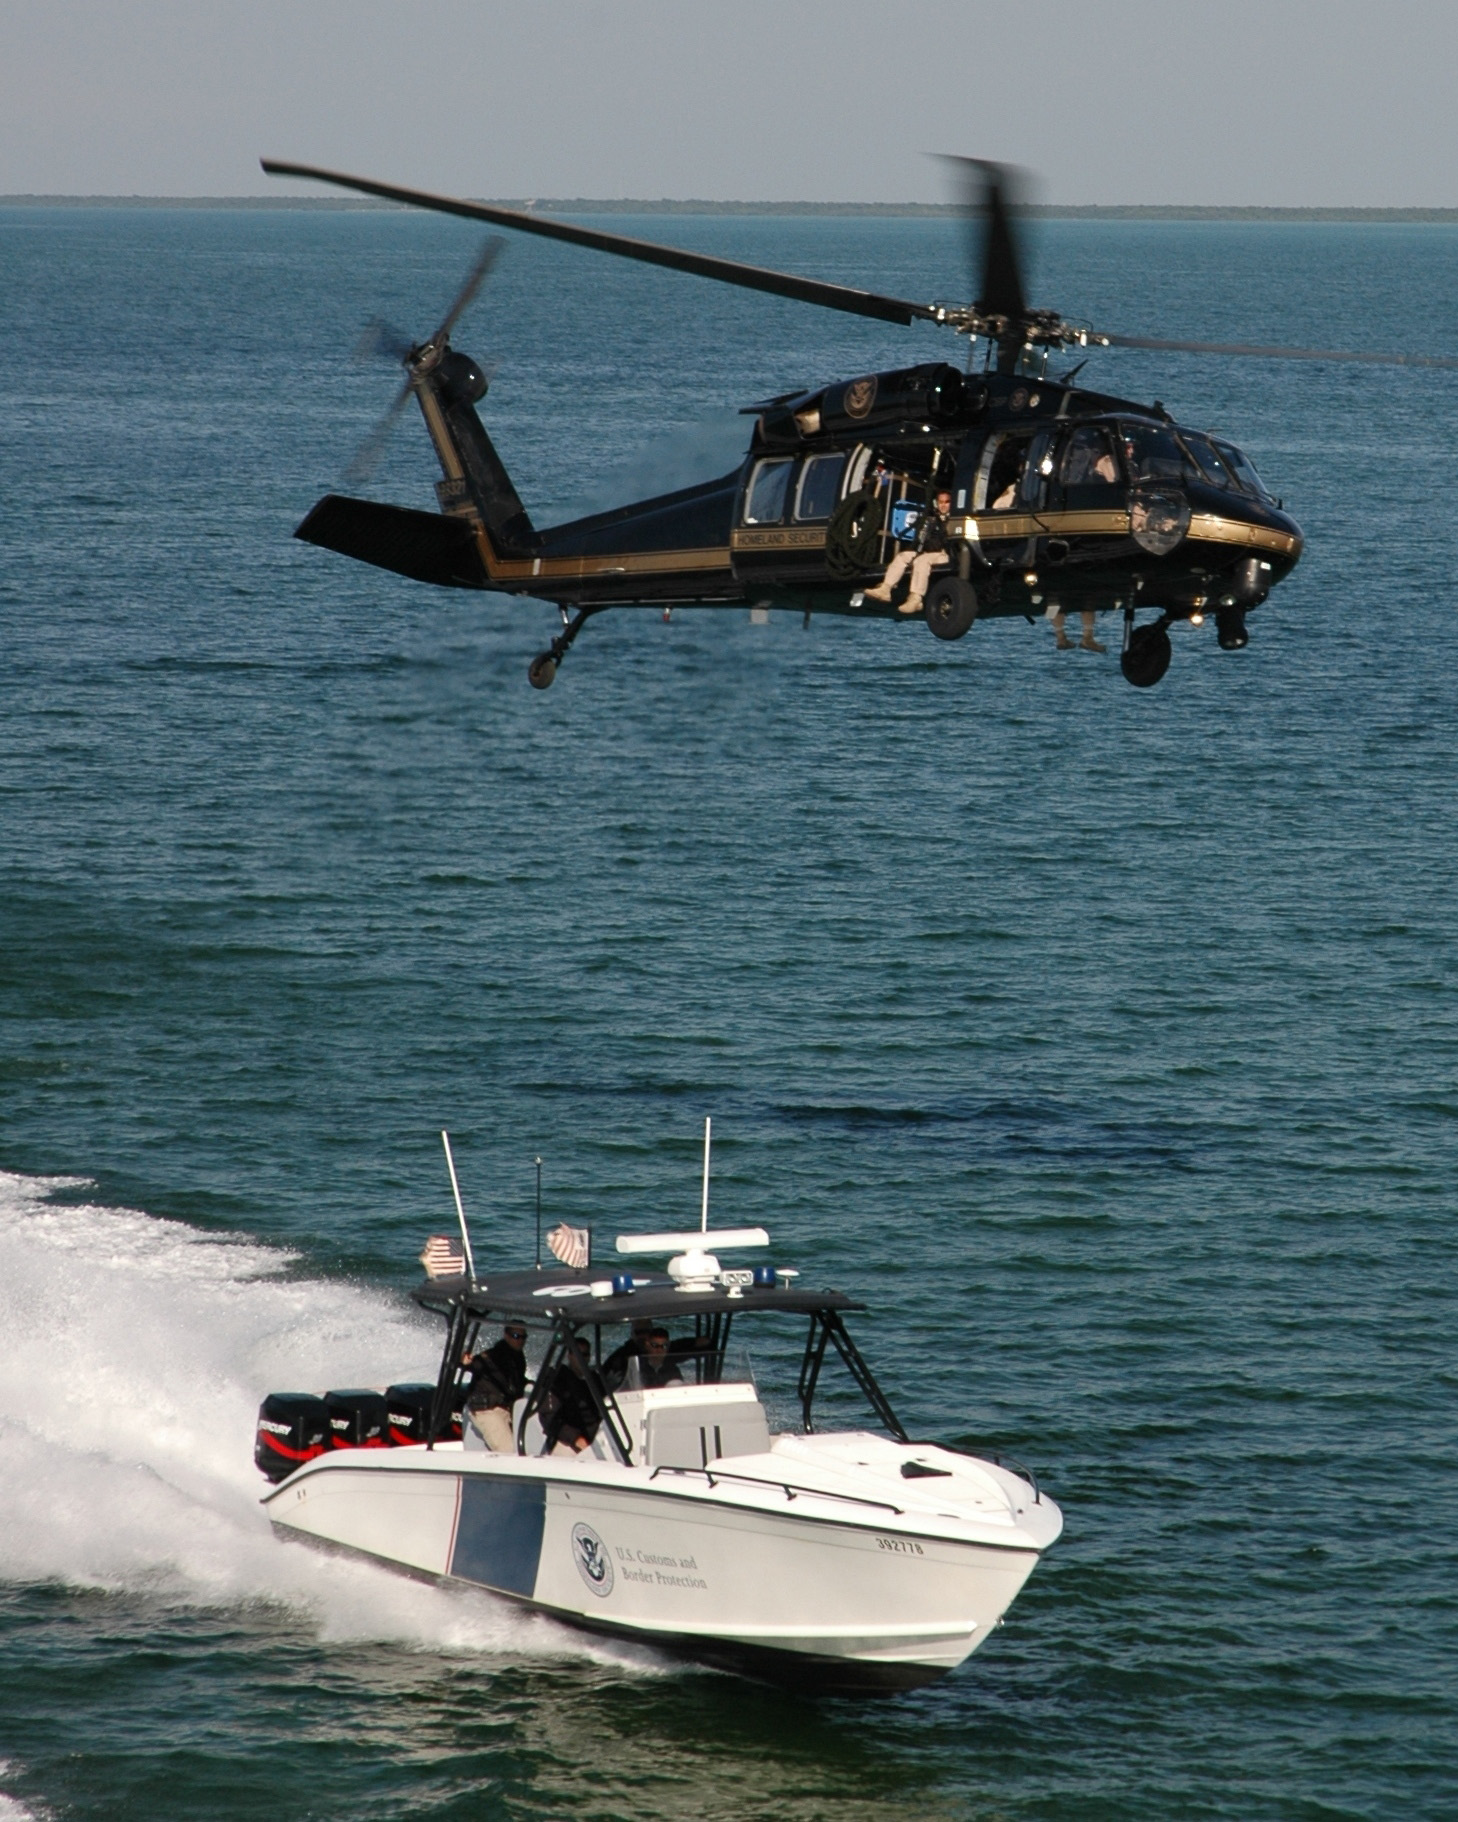 marine helicopter squadron one with Cbp Air And Marine Agents From Homestead Arb Interdict Smuggler Migrants on Pak 20army 20images 20download further V 22 hmx 1 sim likewise Buffalo Native Serves As Huey Crew Chief In Iraq likewise Kennon Protects Interior Cabin For Hmx 1 U S Presidential Greenside Fleet additionally First Female Fly Marine One Relieved  mand.